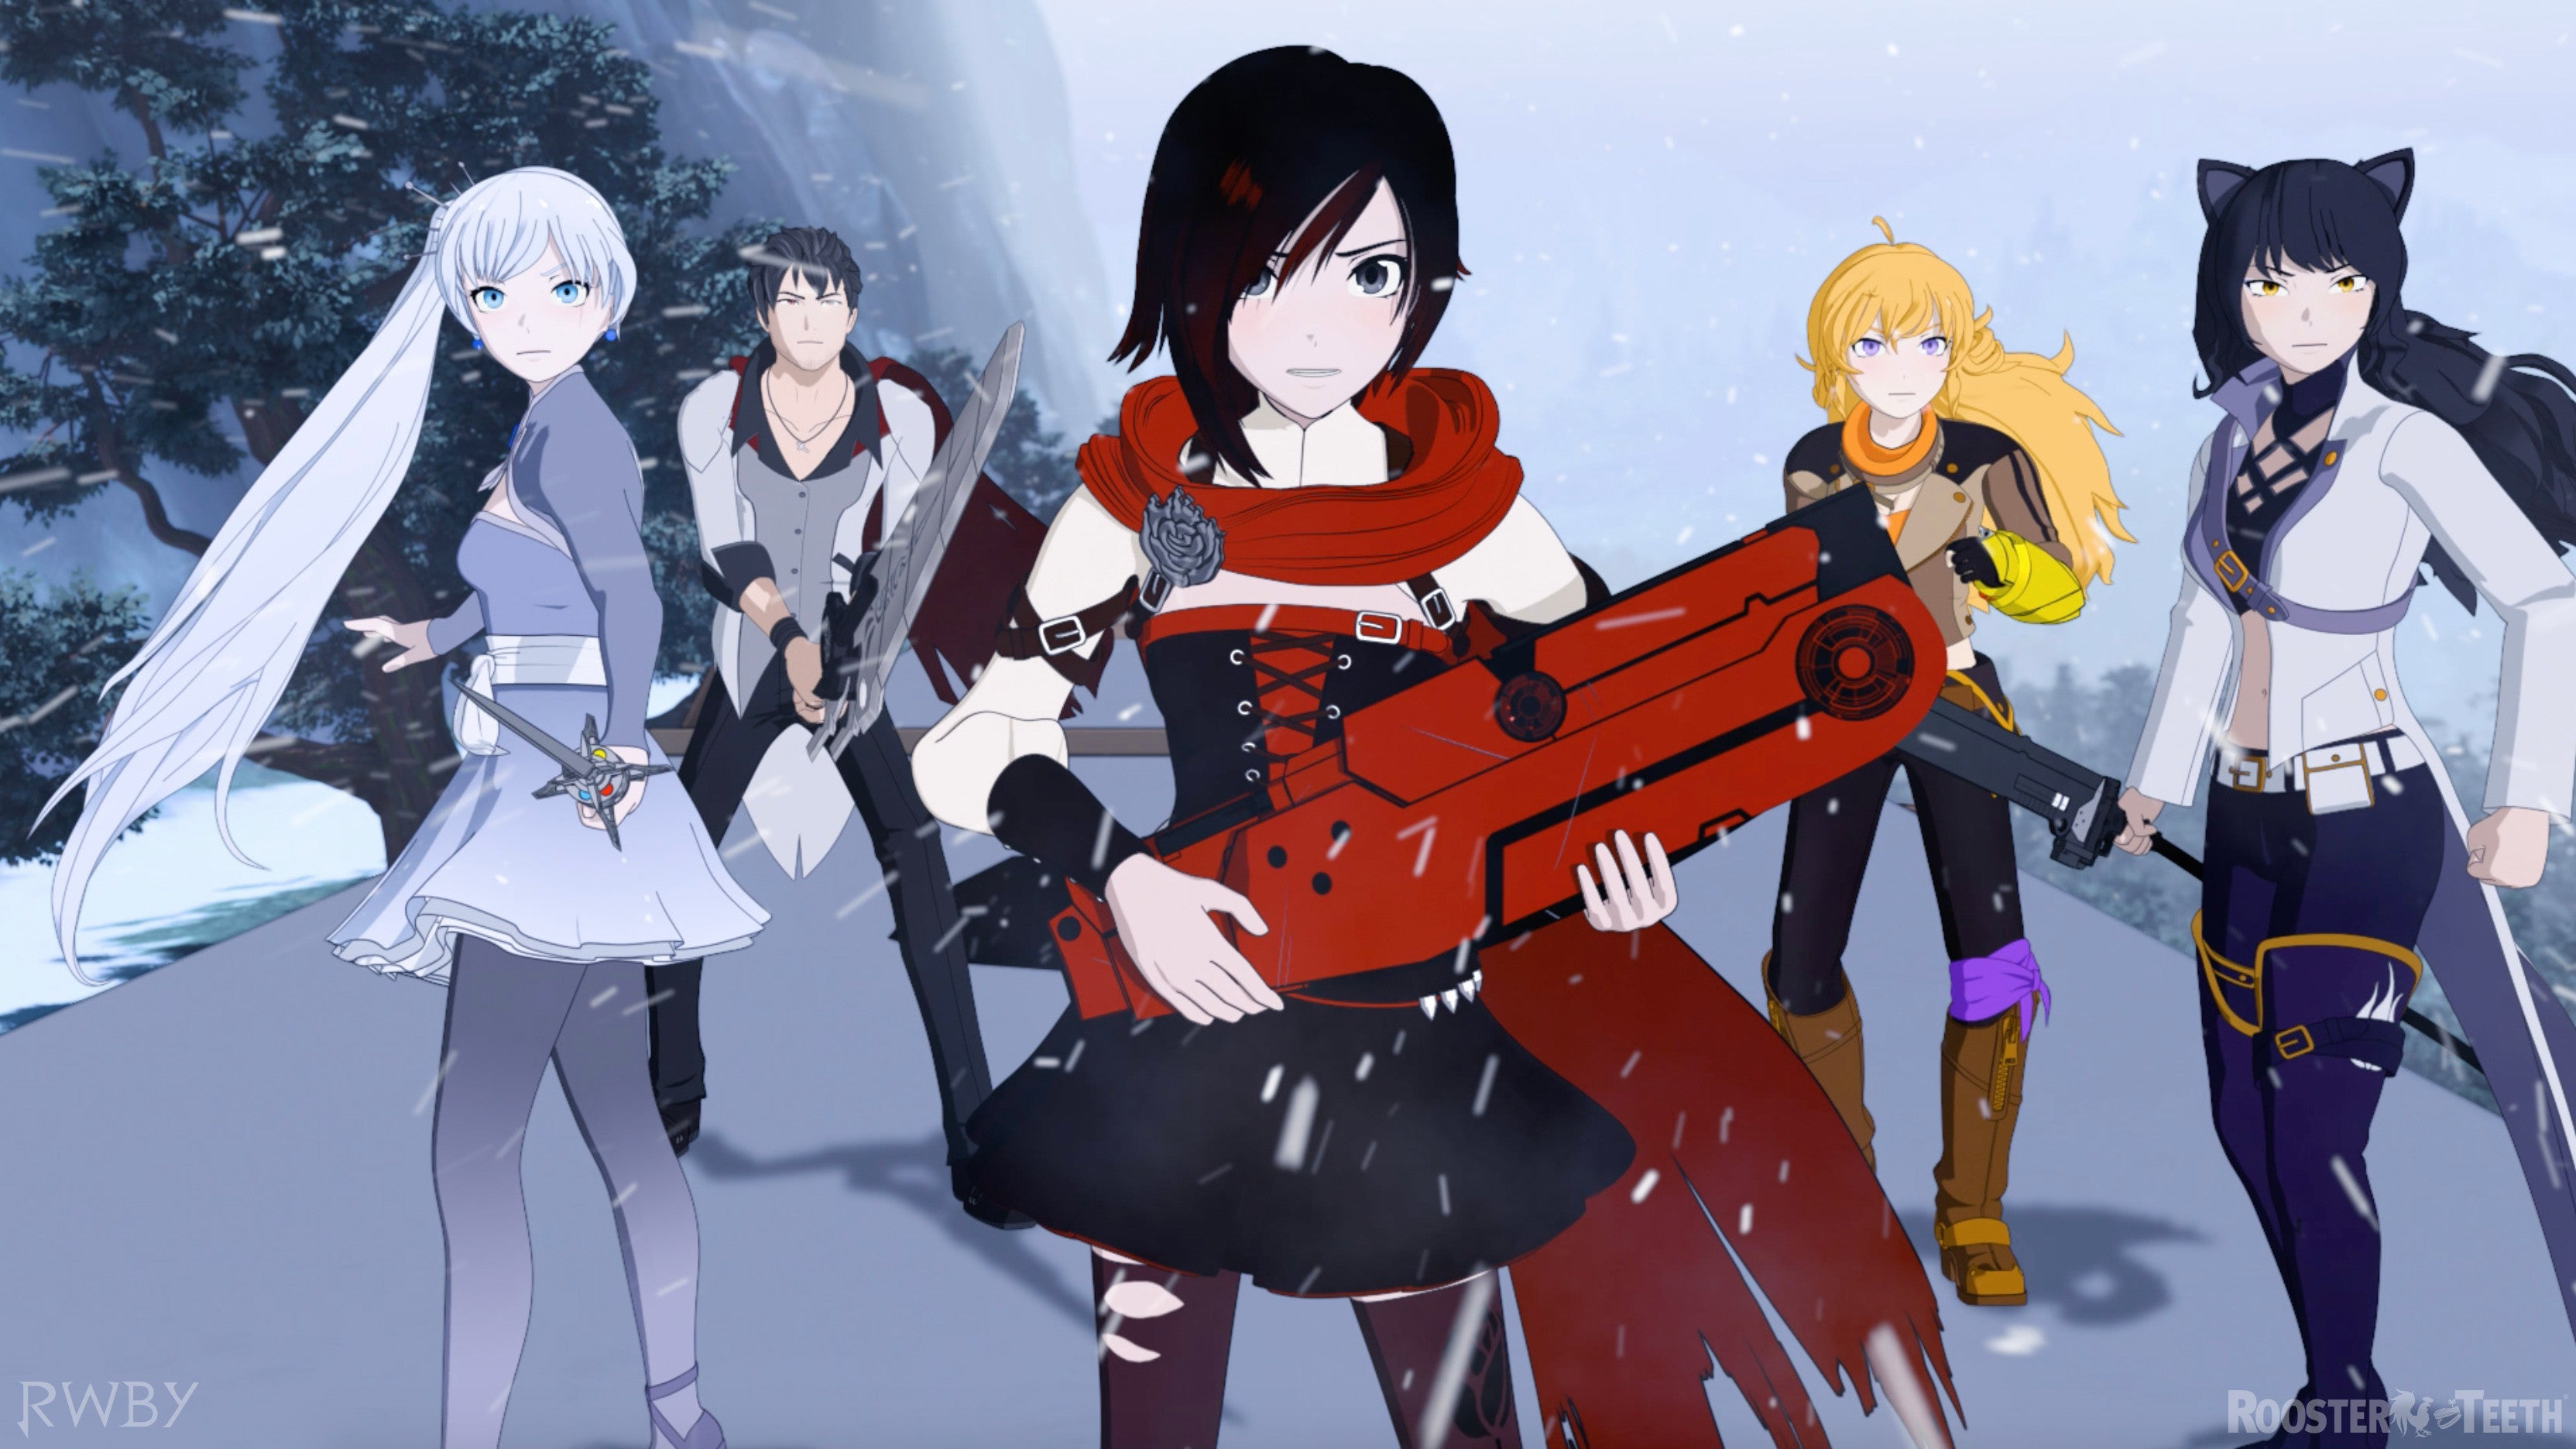 Rooster Teeth Is Teaming Up With DC For RWBY And Gen:LOCK Comics